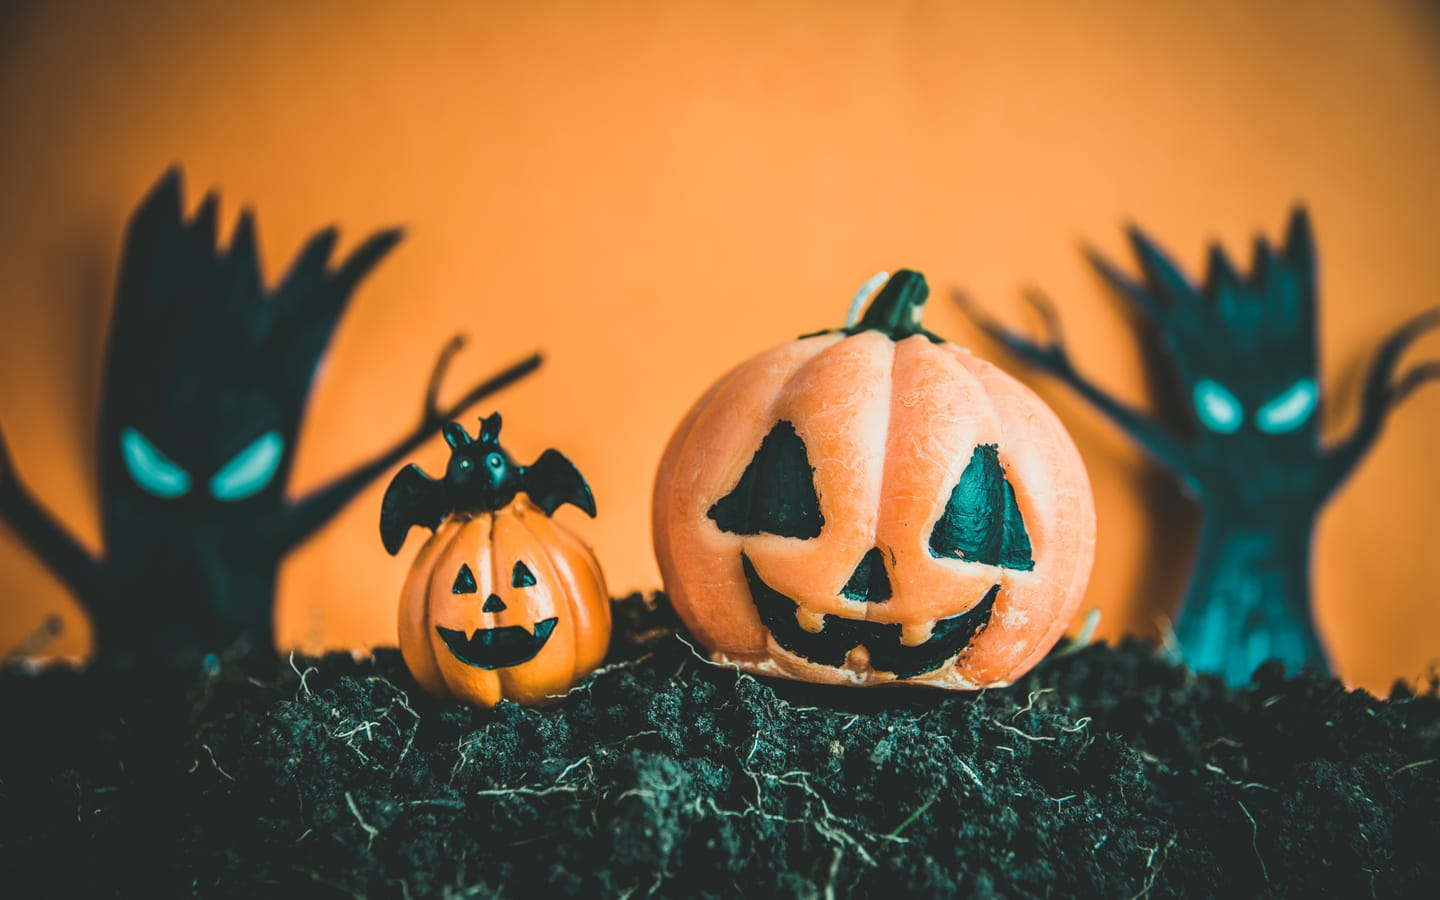 18 events & activities for halloween in dubai 2018 - mybayut